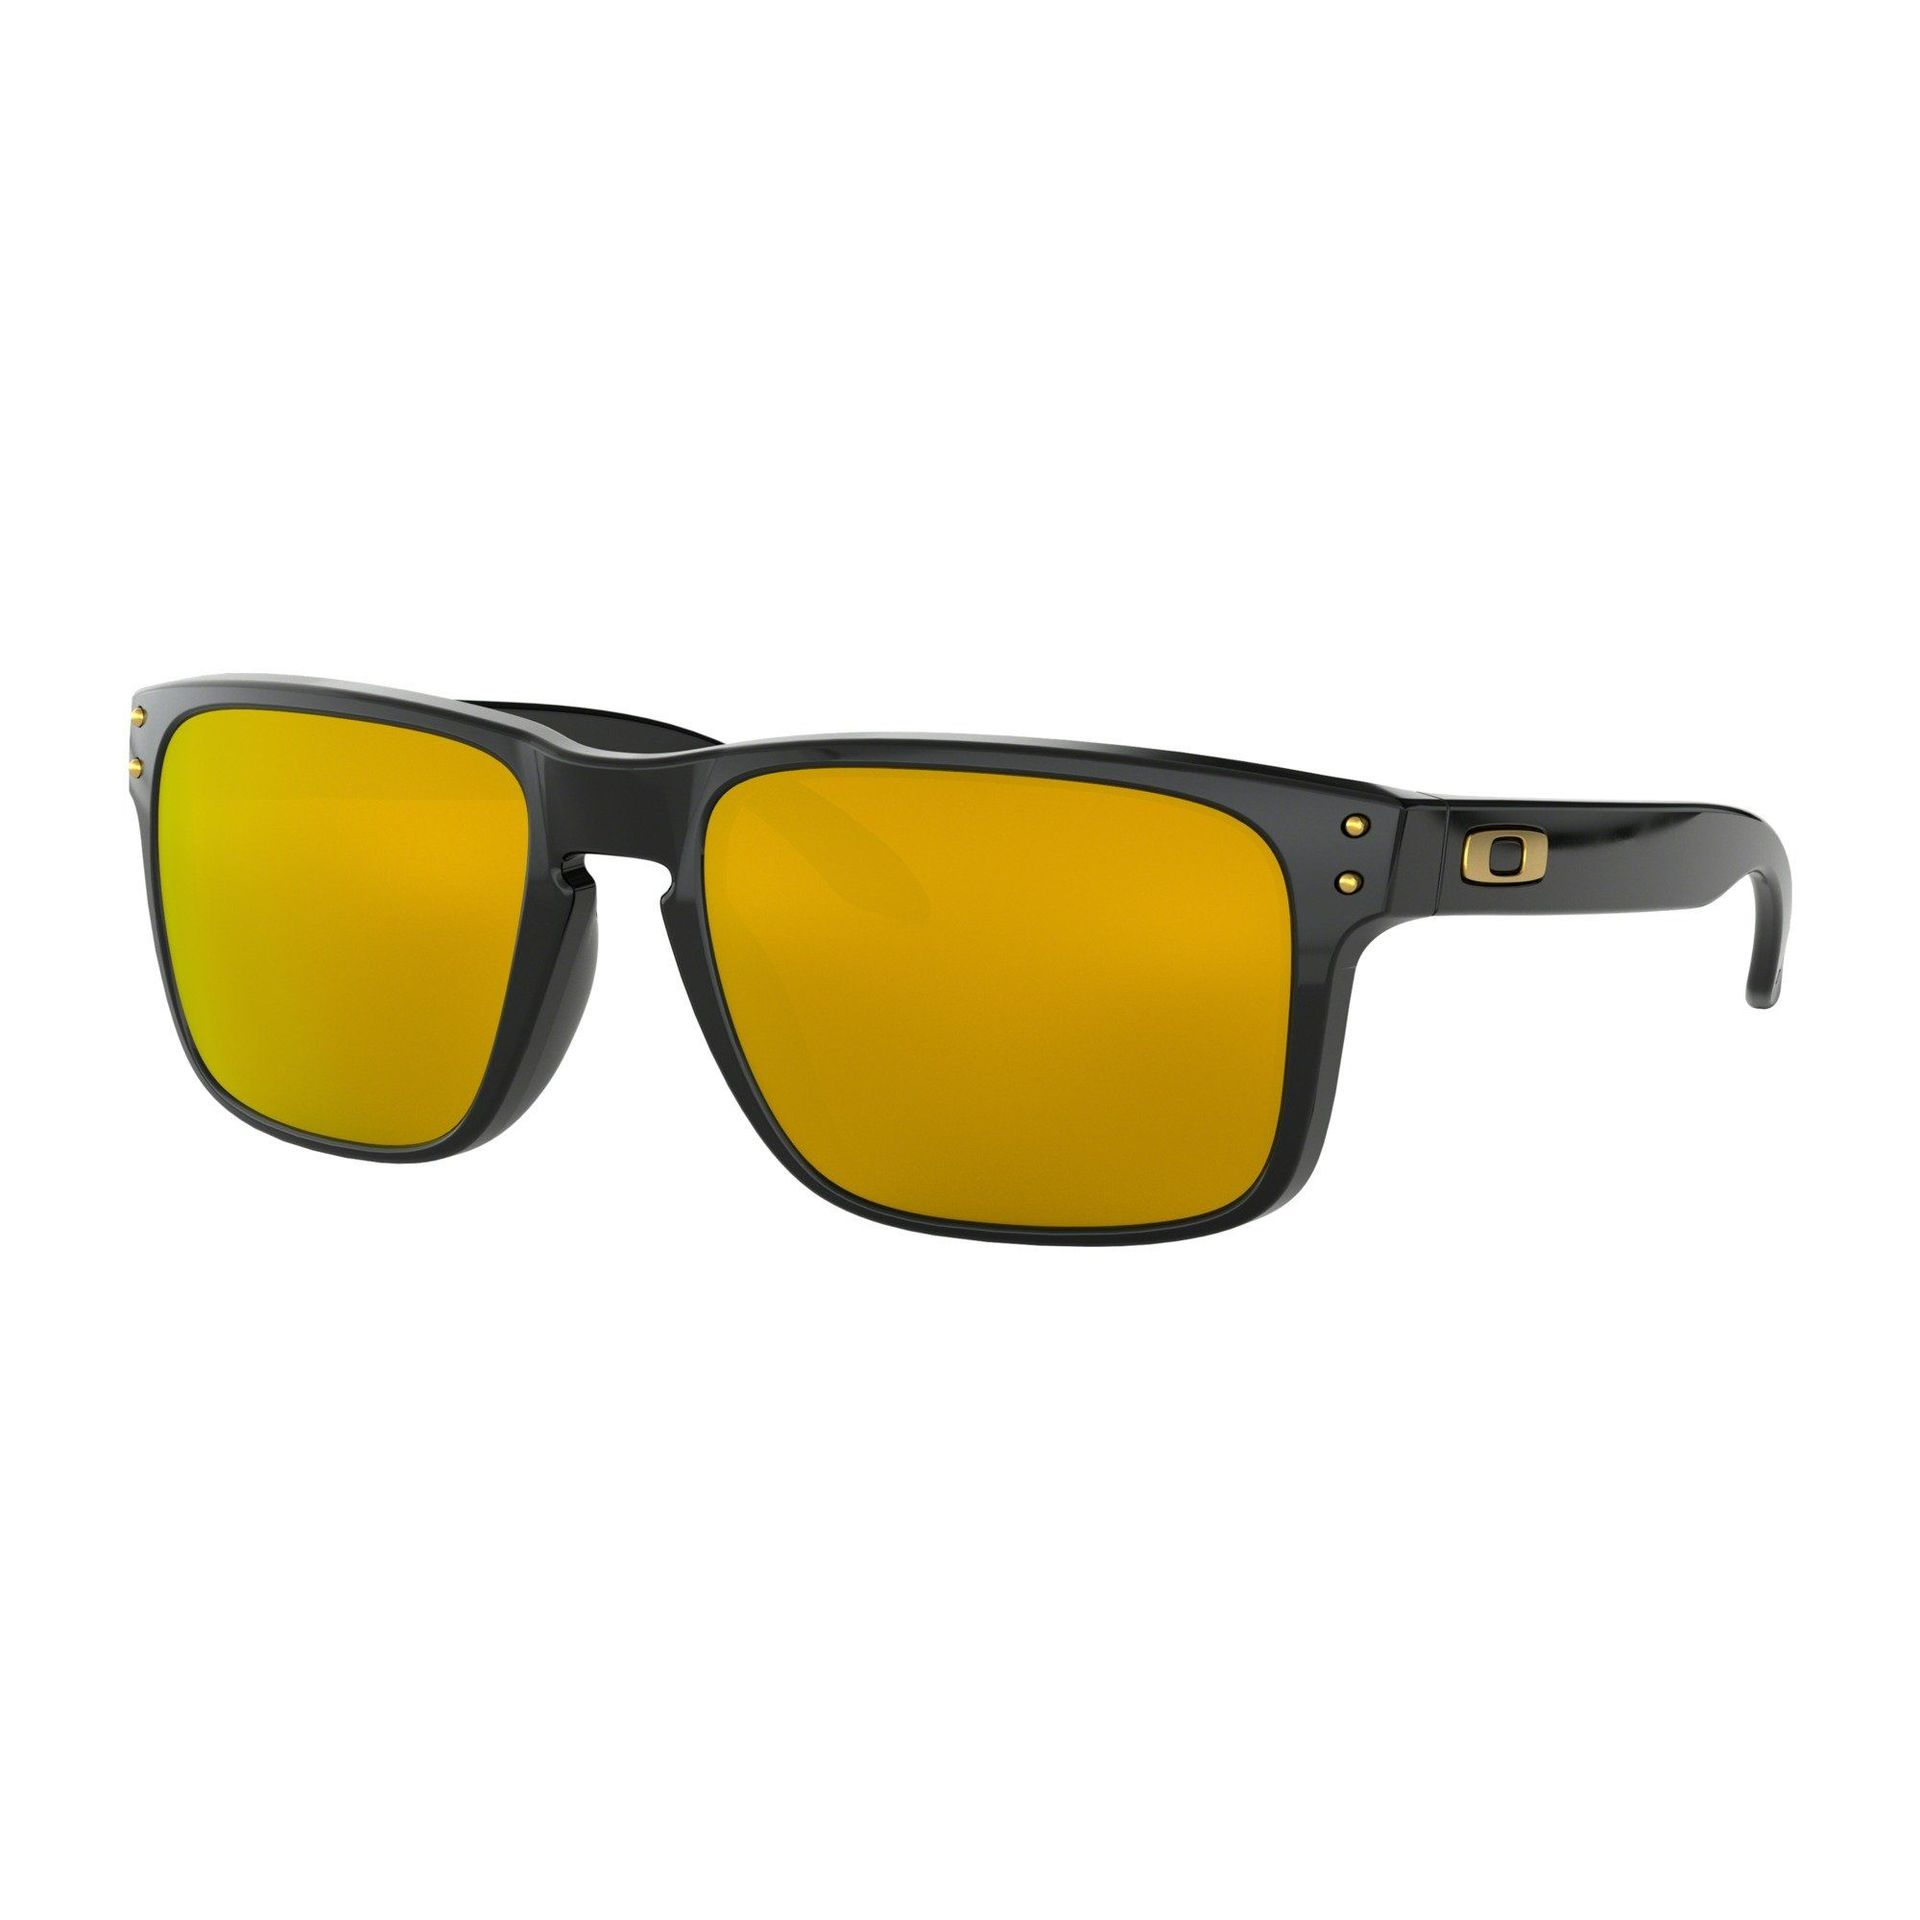 OKULARY OAKLEY HOLBROOK POLISHED BLACK|24K IRIDIUM 1